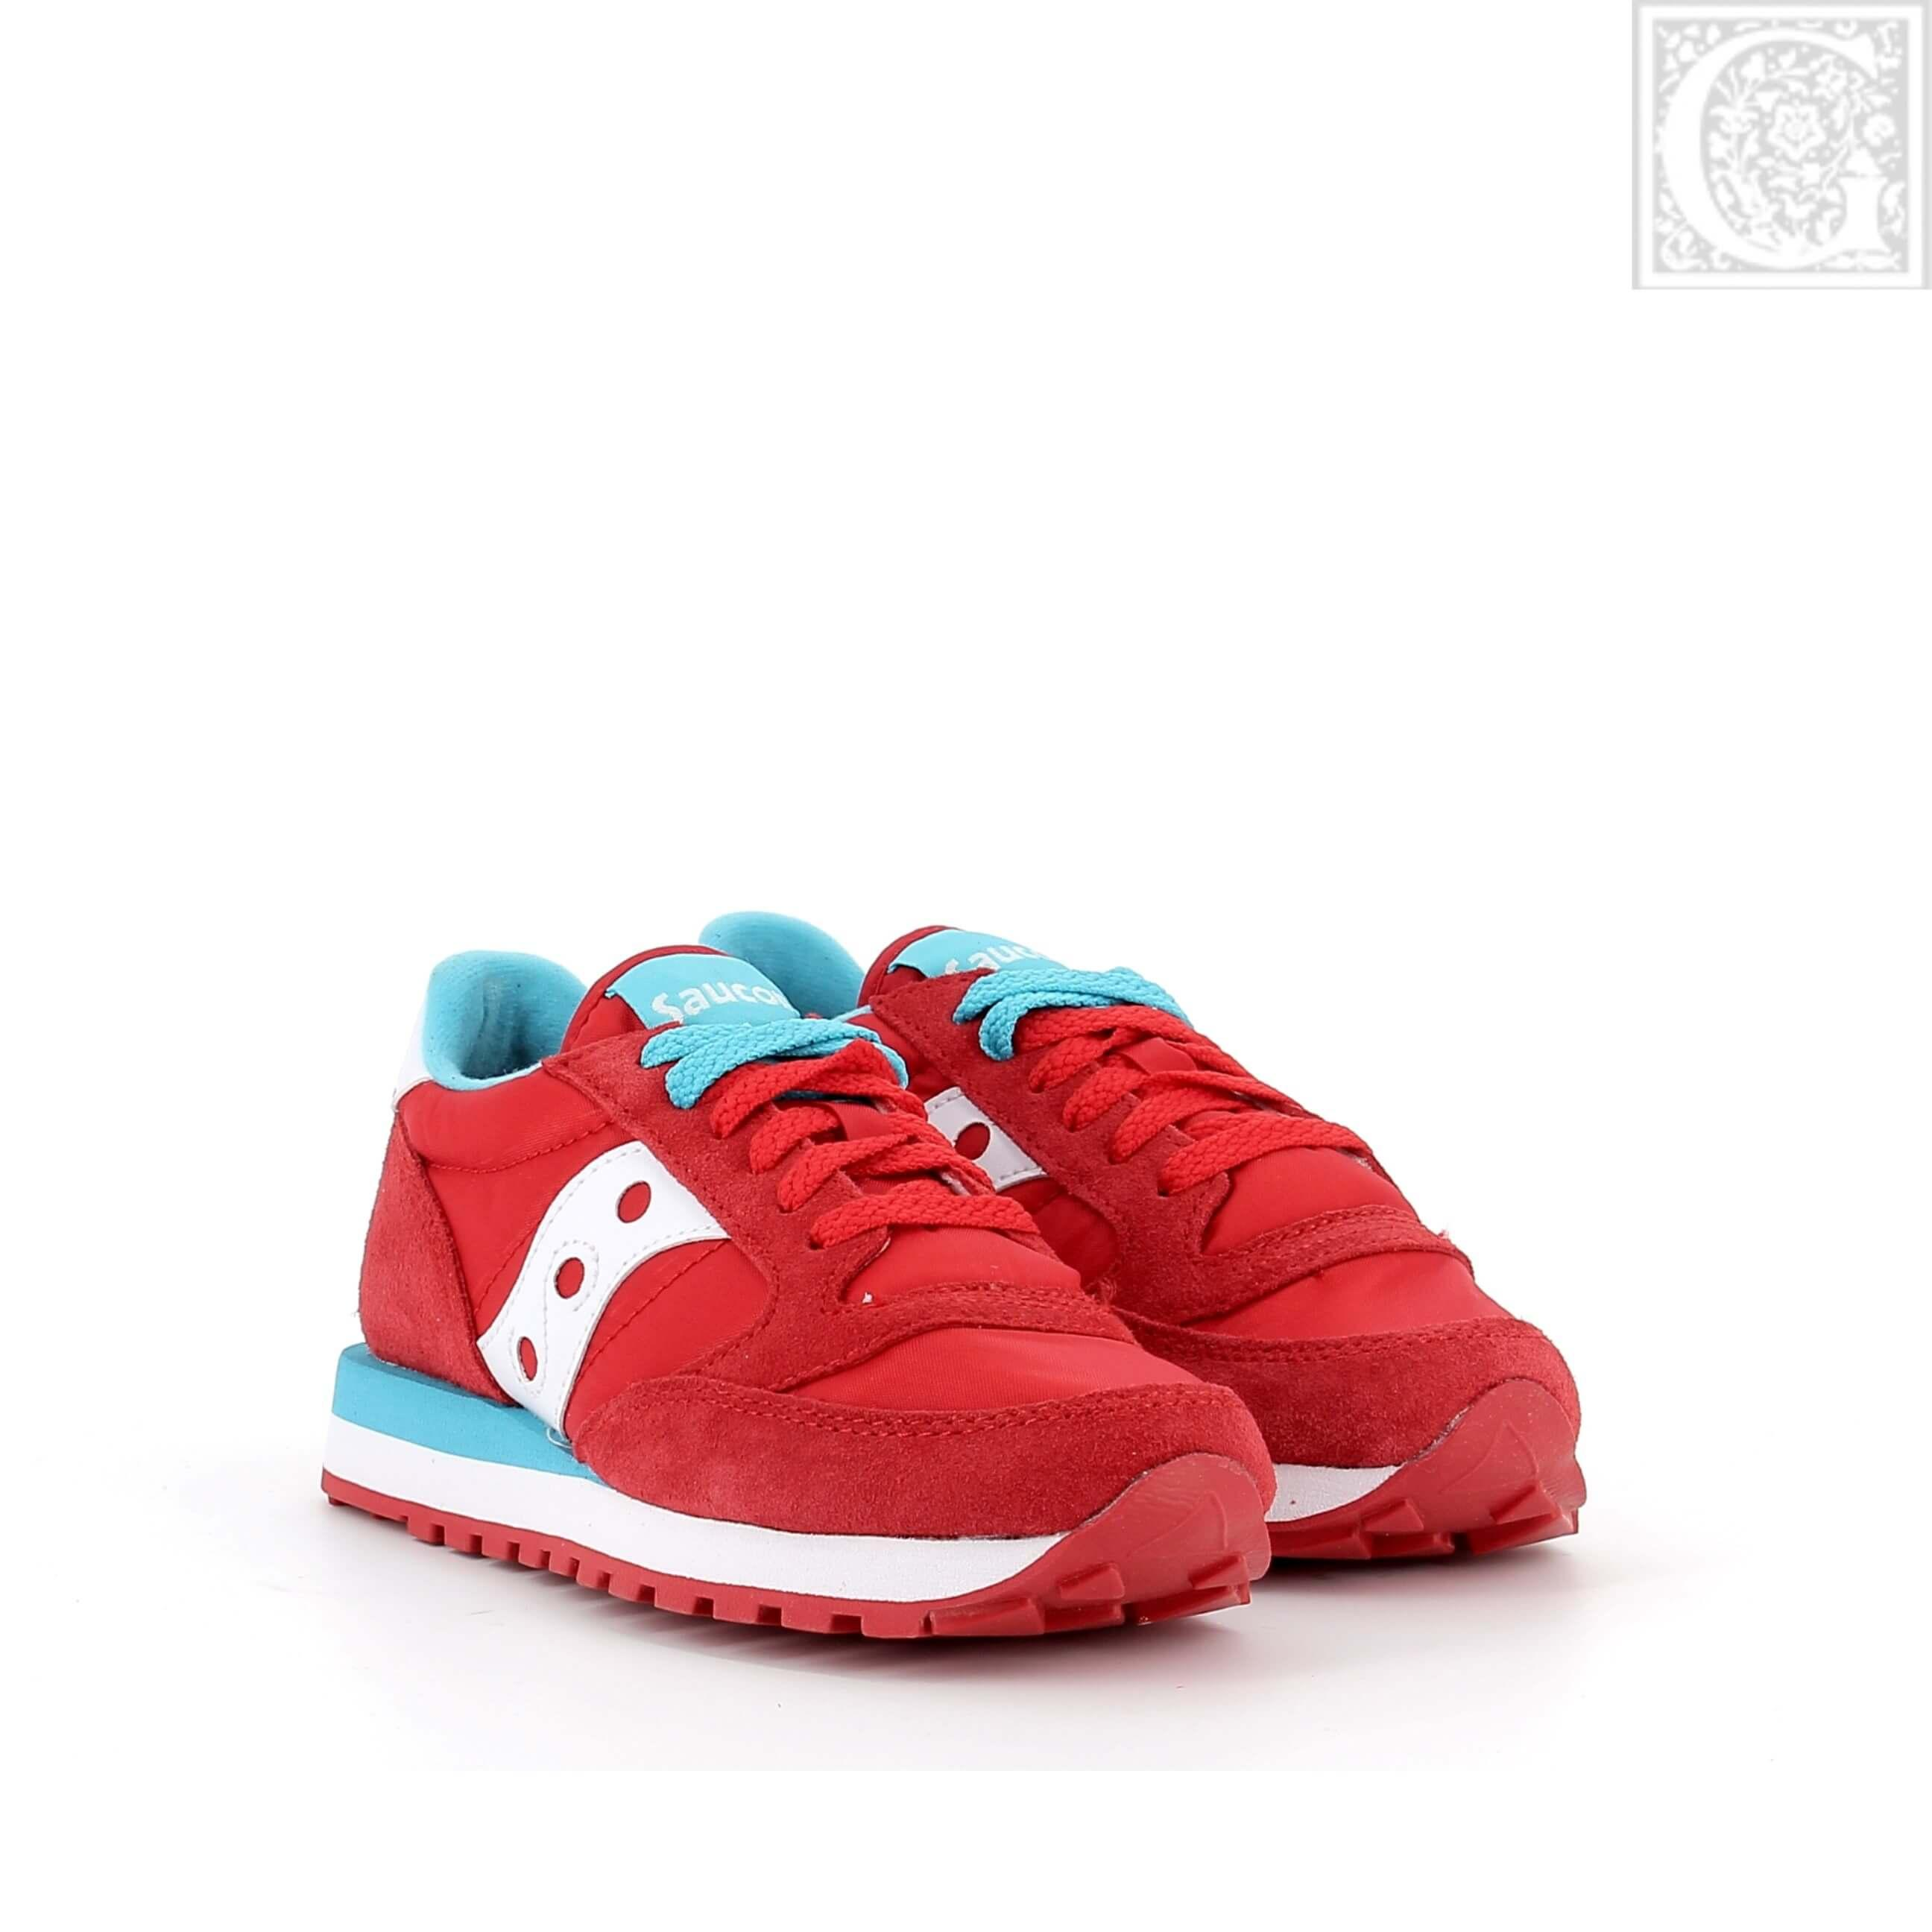 Saucony jazz original 1044-280 red-heavenly - 5.5 sUp5c